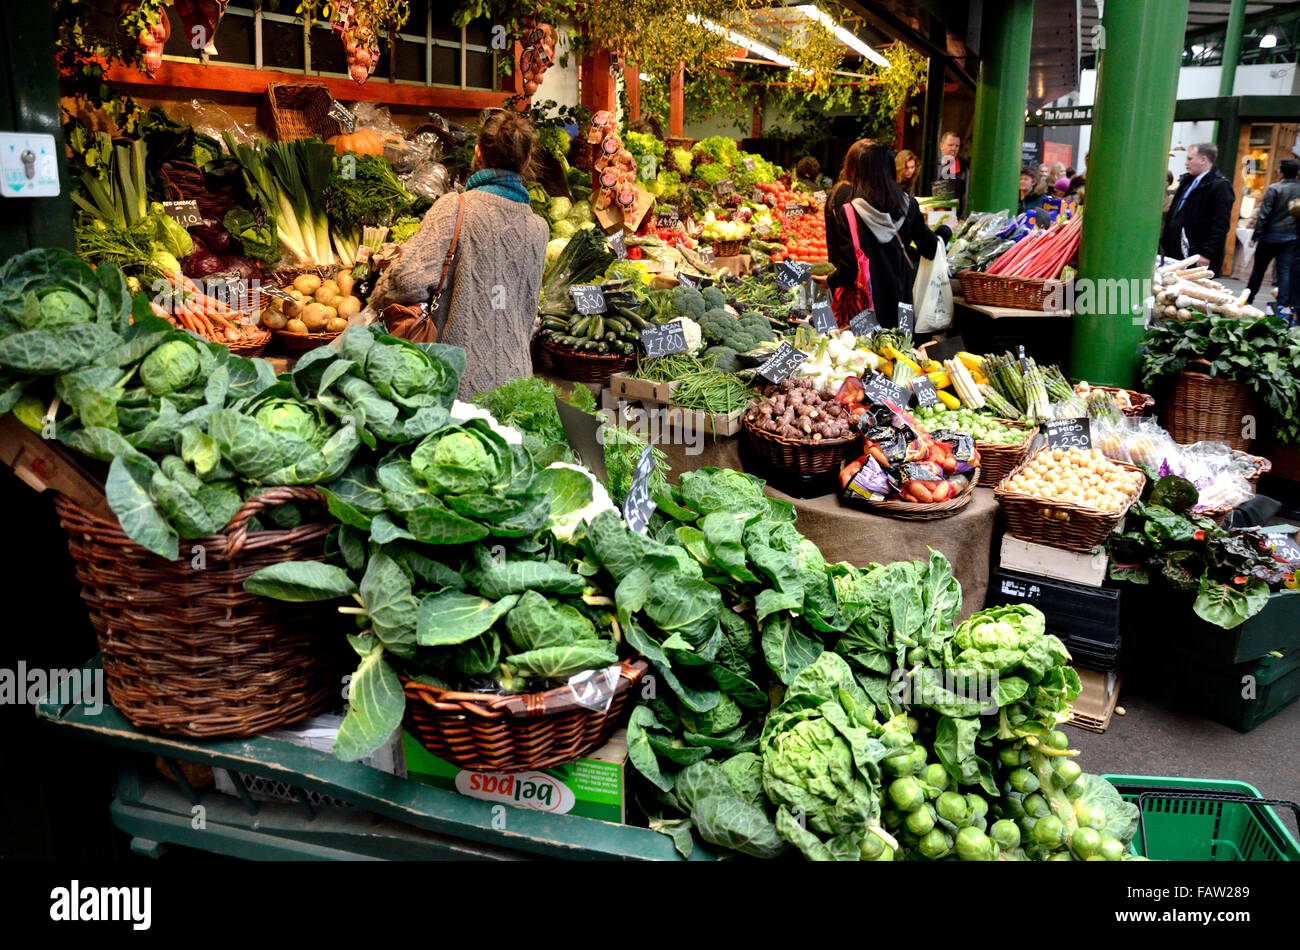 London, England, UK. Borough Market, Southwark, vegetable stall - Stock Image